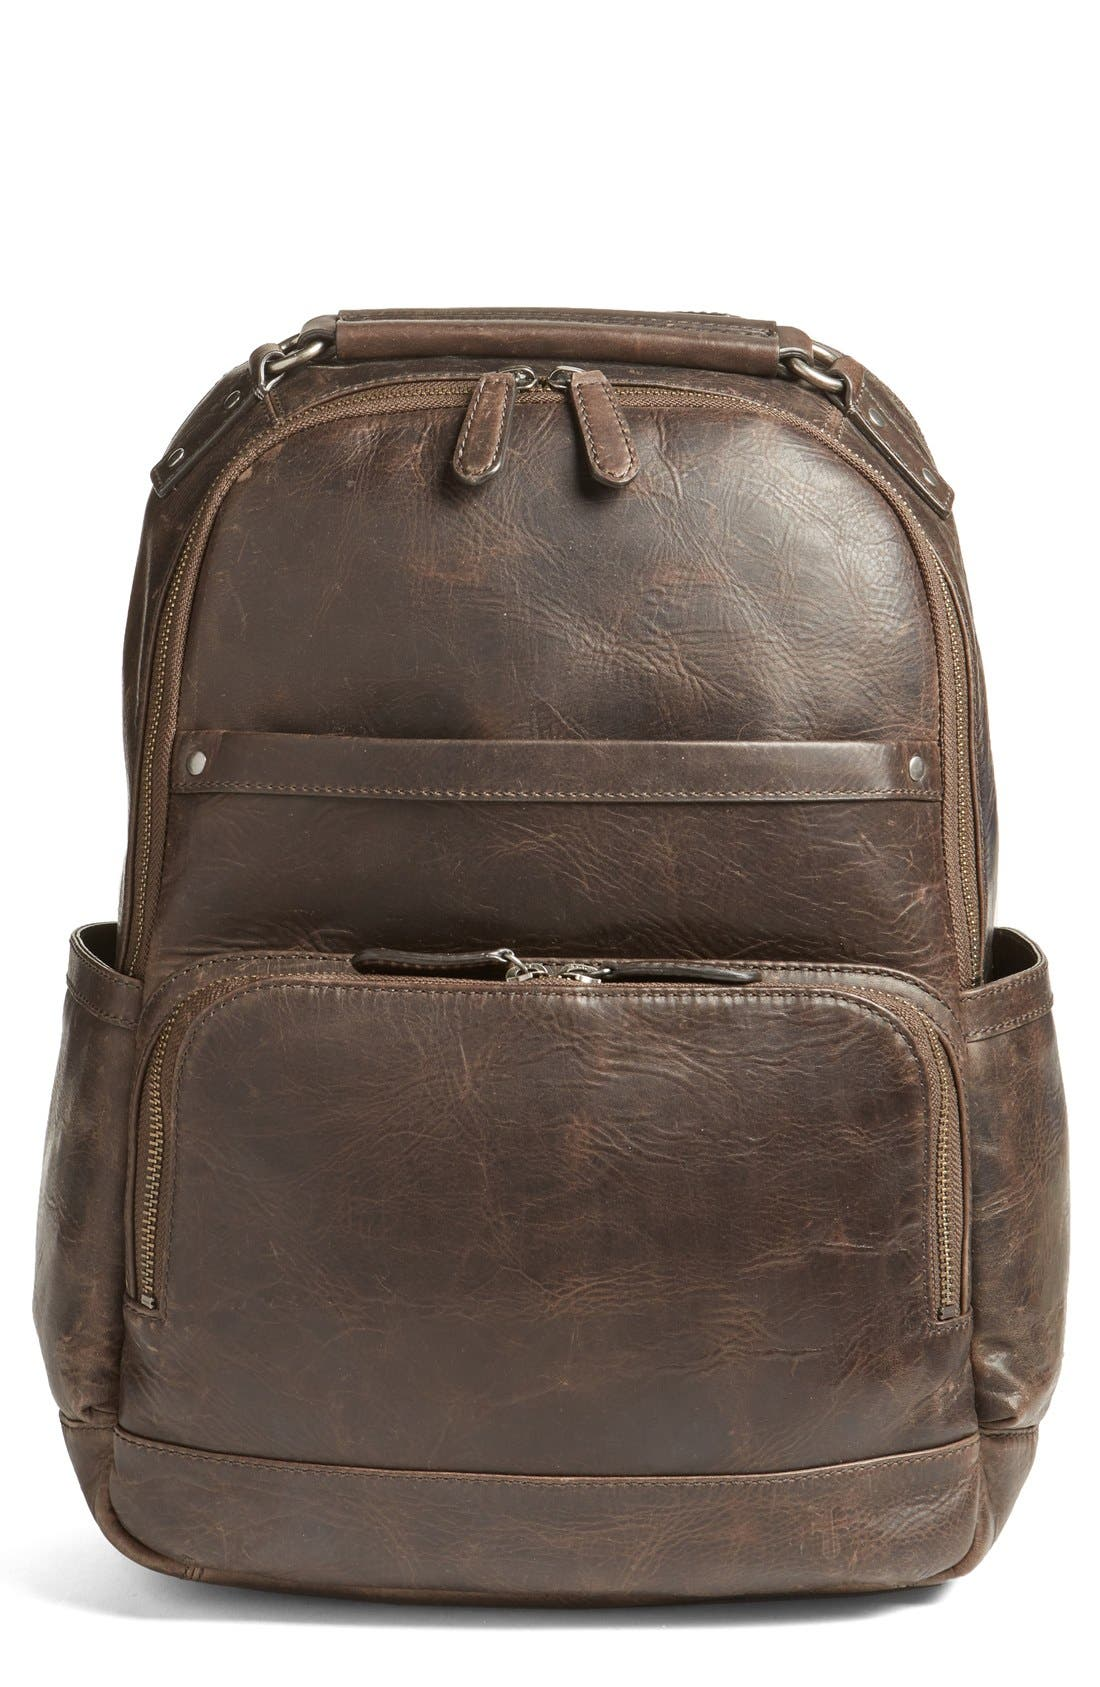 FRYE, 'Logan' Leather Backpack, Main thumbnail 1, color, SLATE